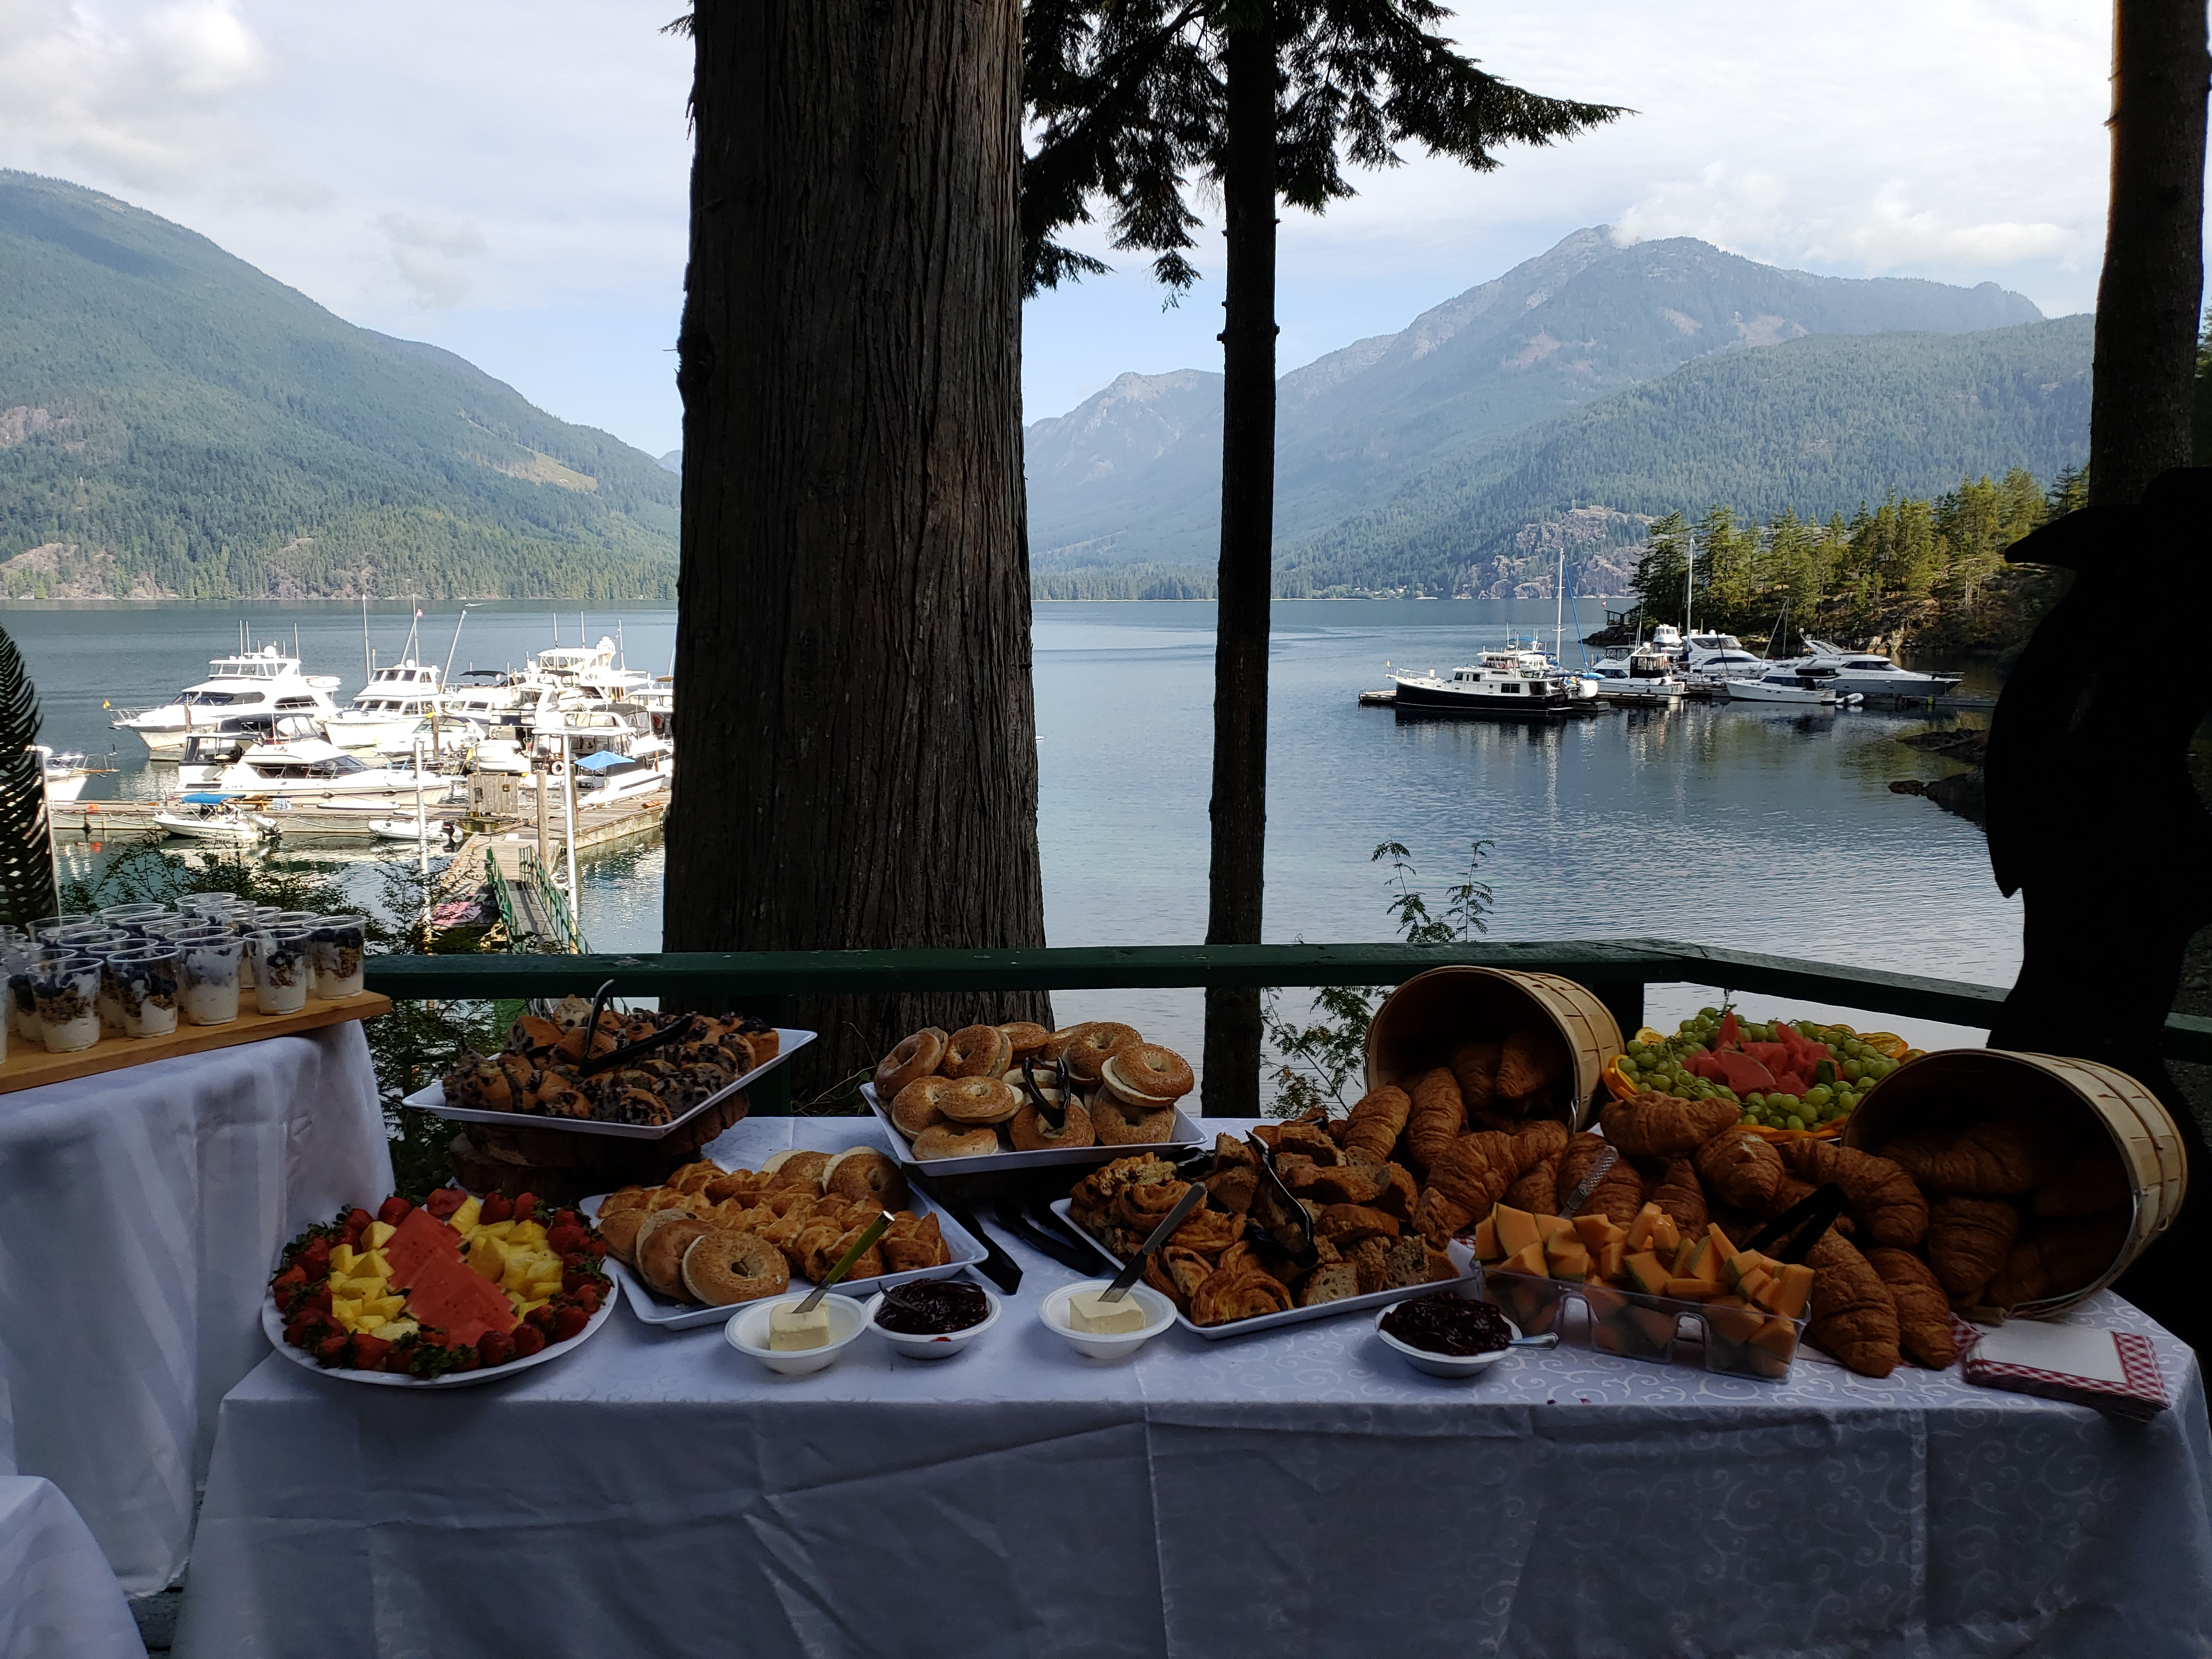 Sunday Brunch at the Fall cruise